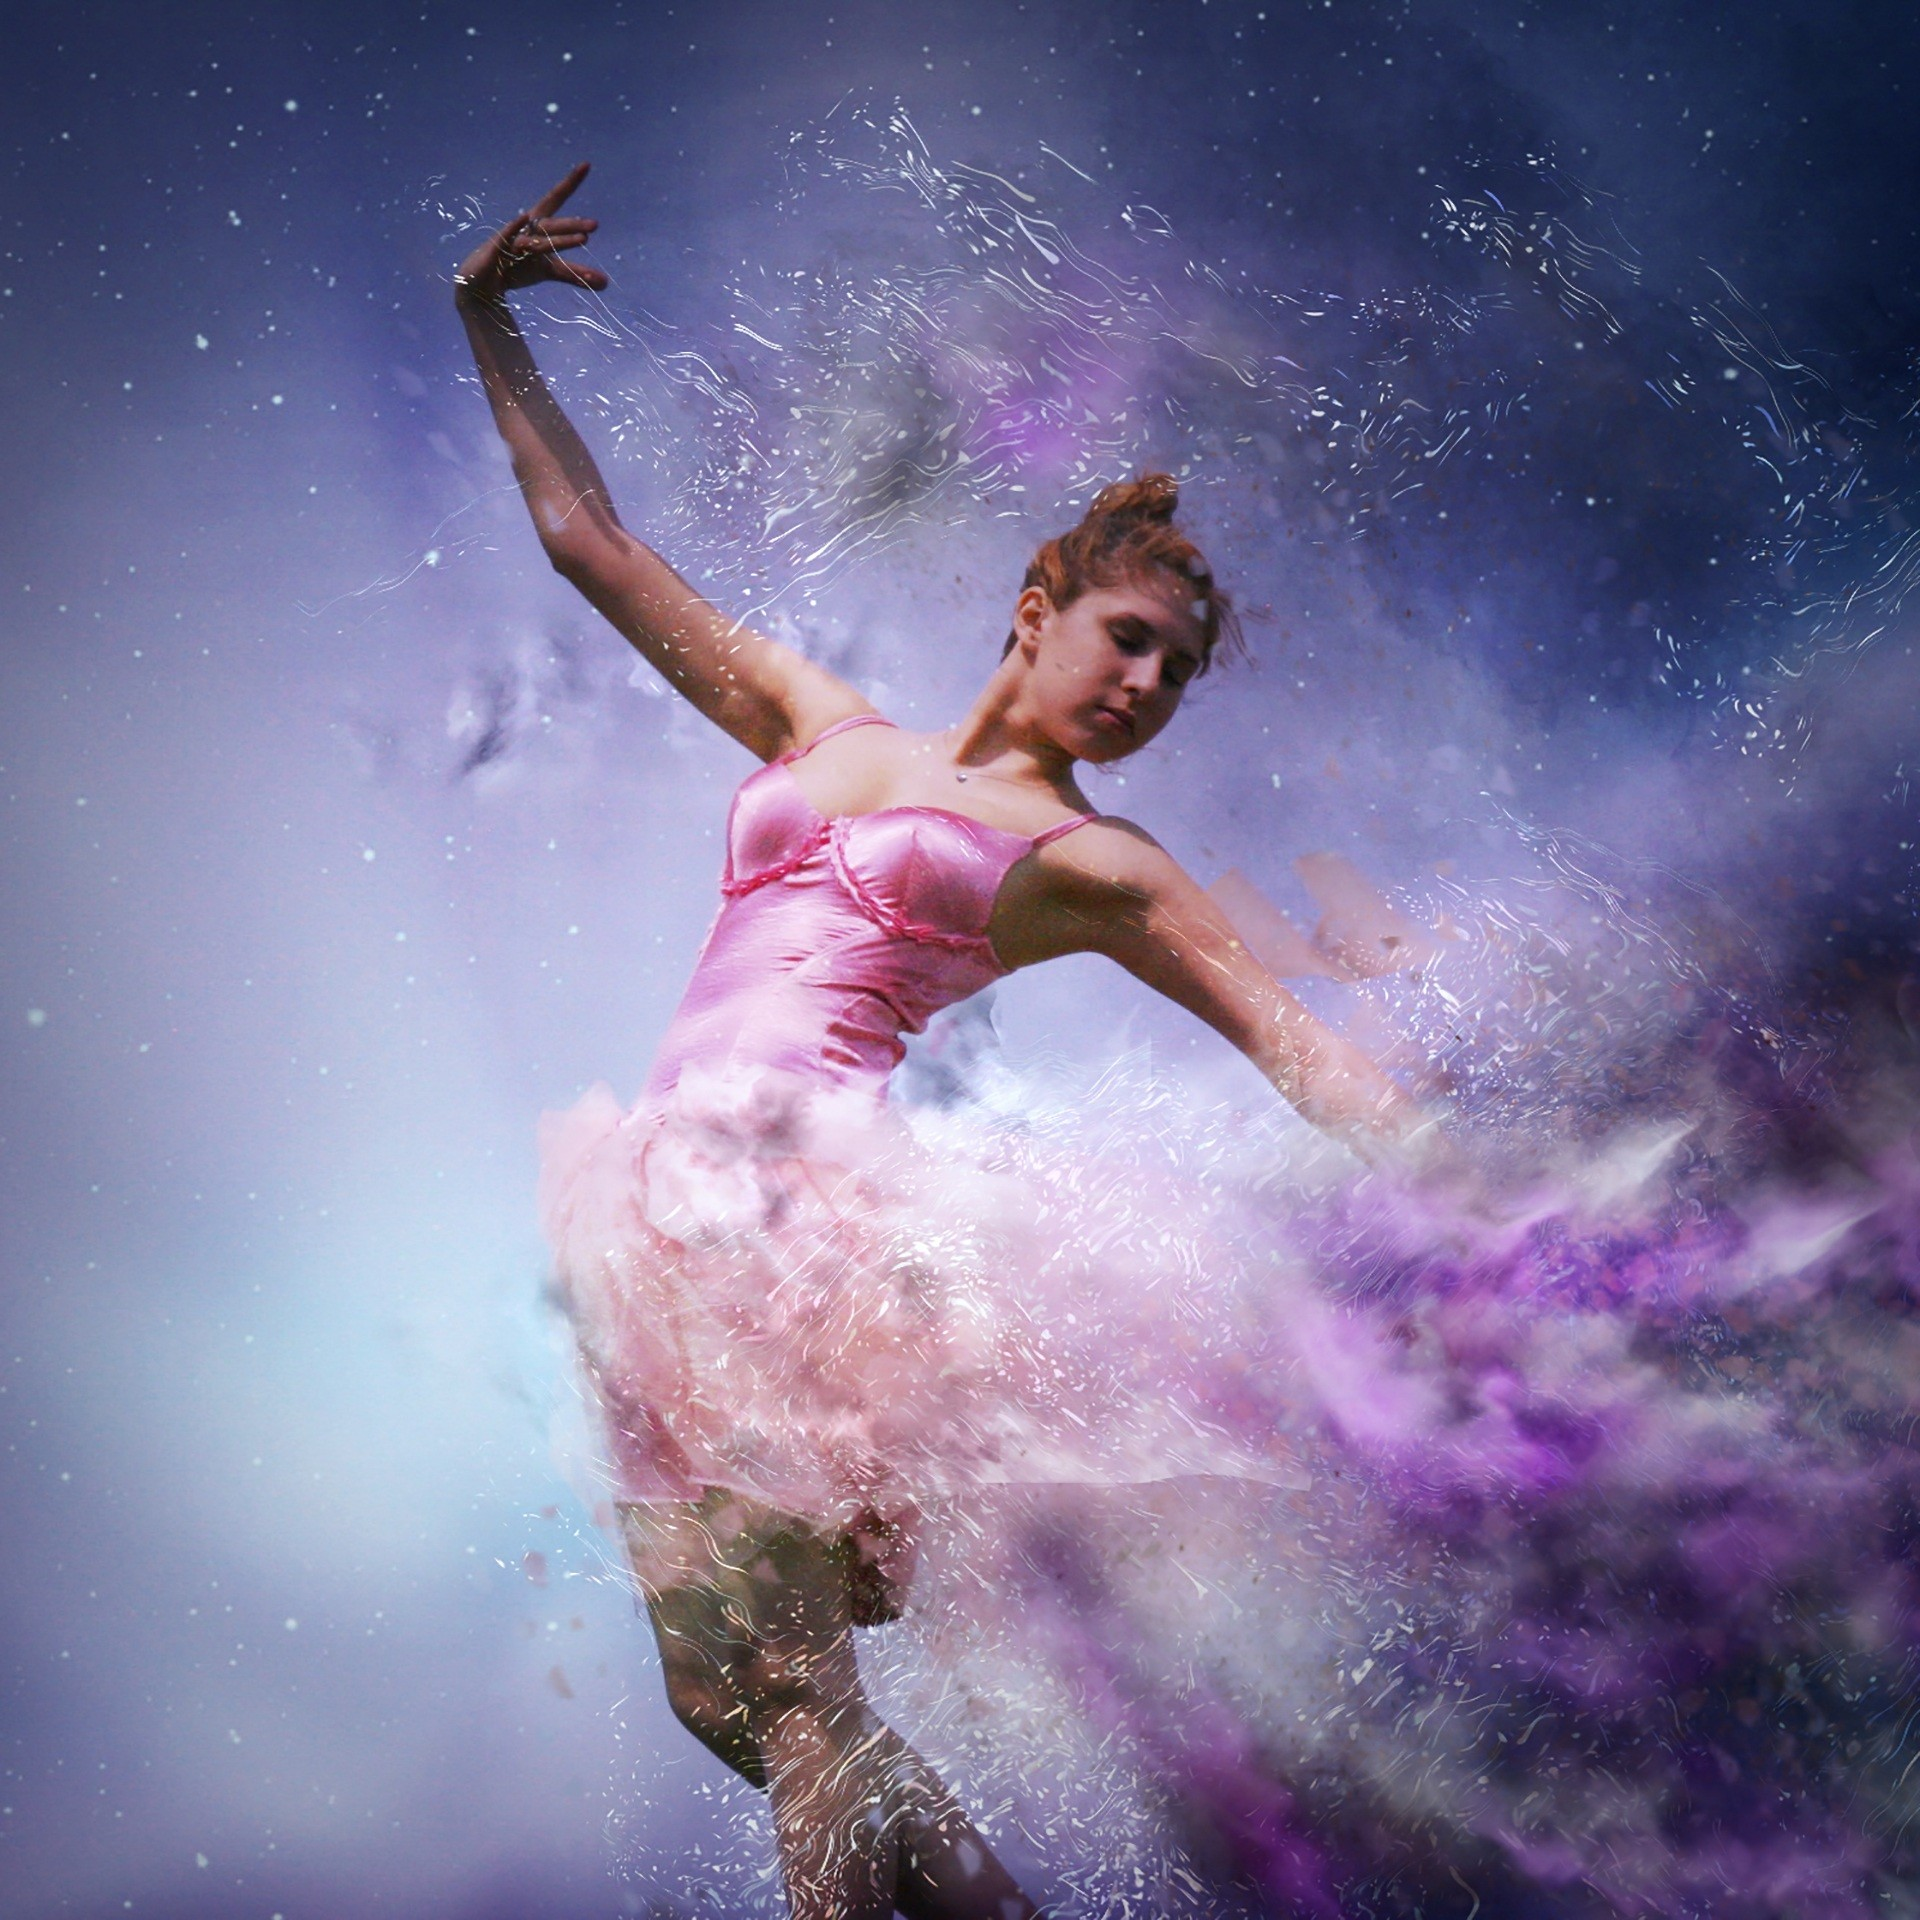 Free Images : water, person, sky, girl, woman, purple, atmosphere, motion,  female, young, space, human, fashion, ballerina, ballet, dancer, fun,  classical, …